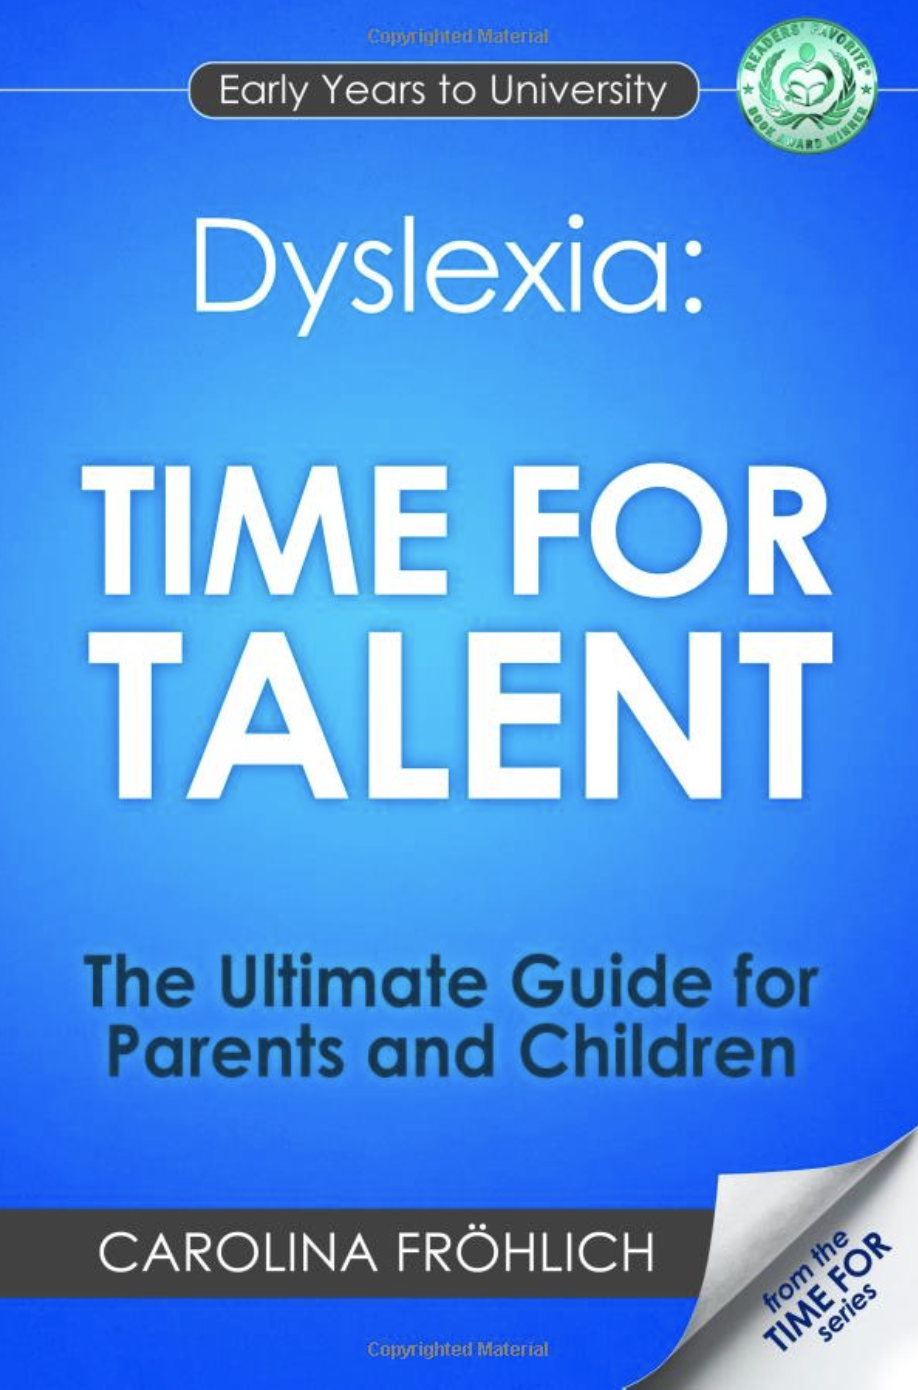 Dyslexia: Time For Talent: The Ultimate Guide for Parents and Children